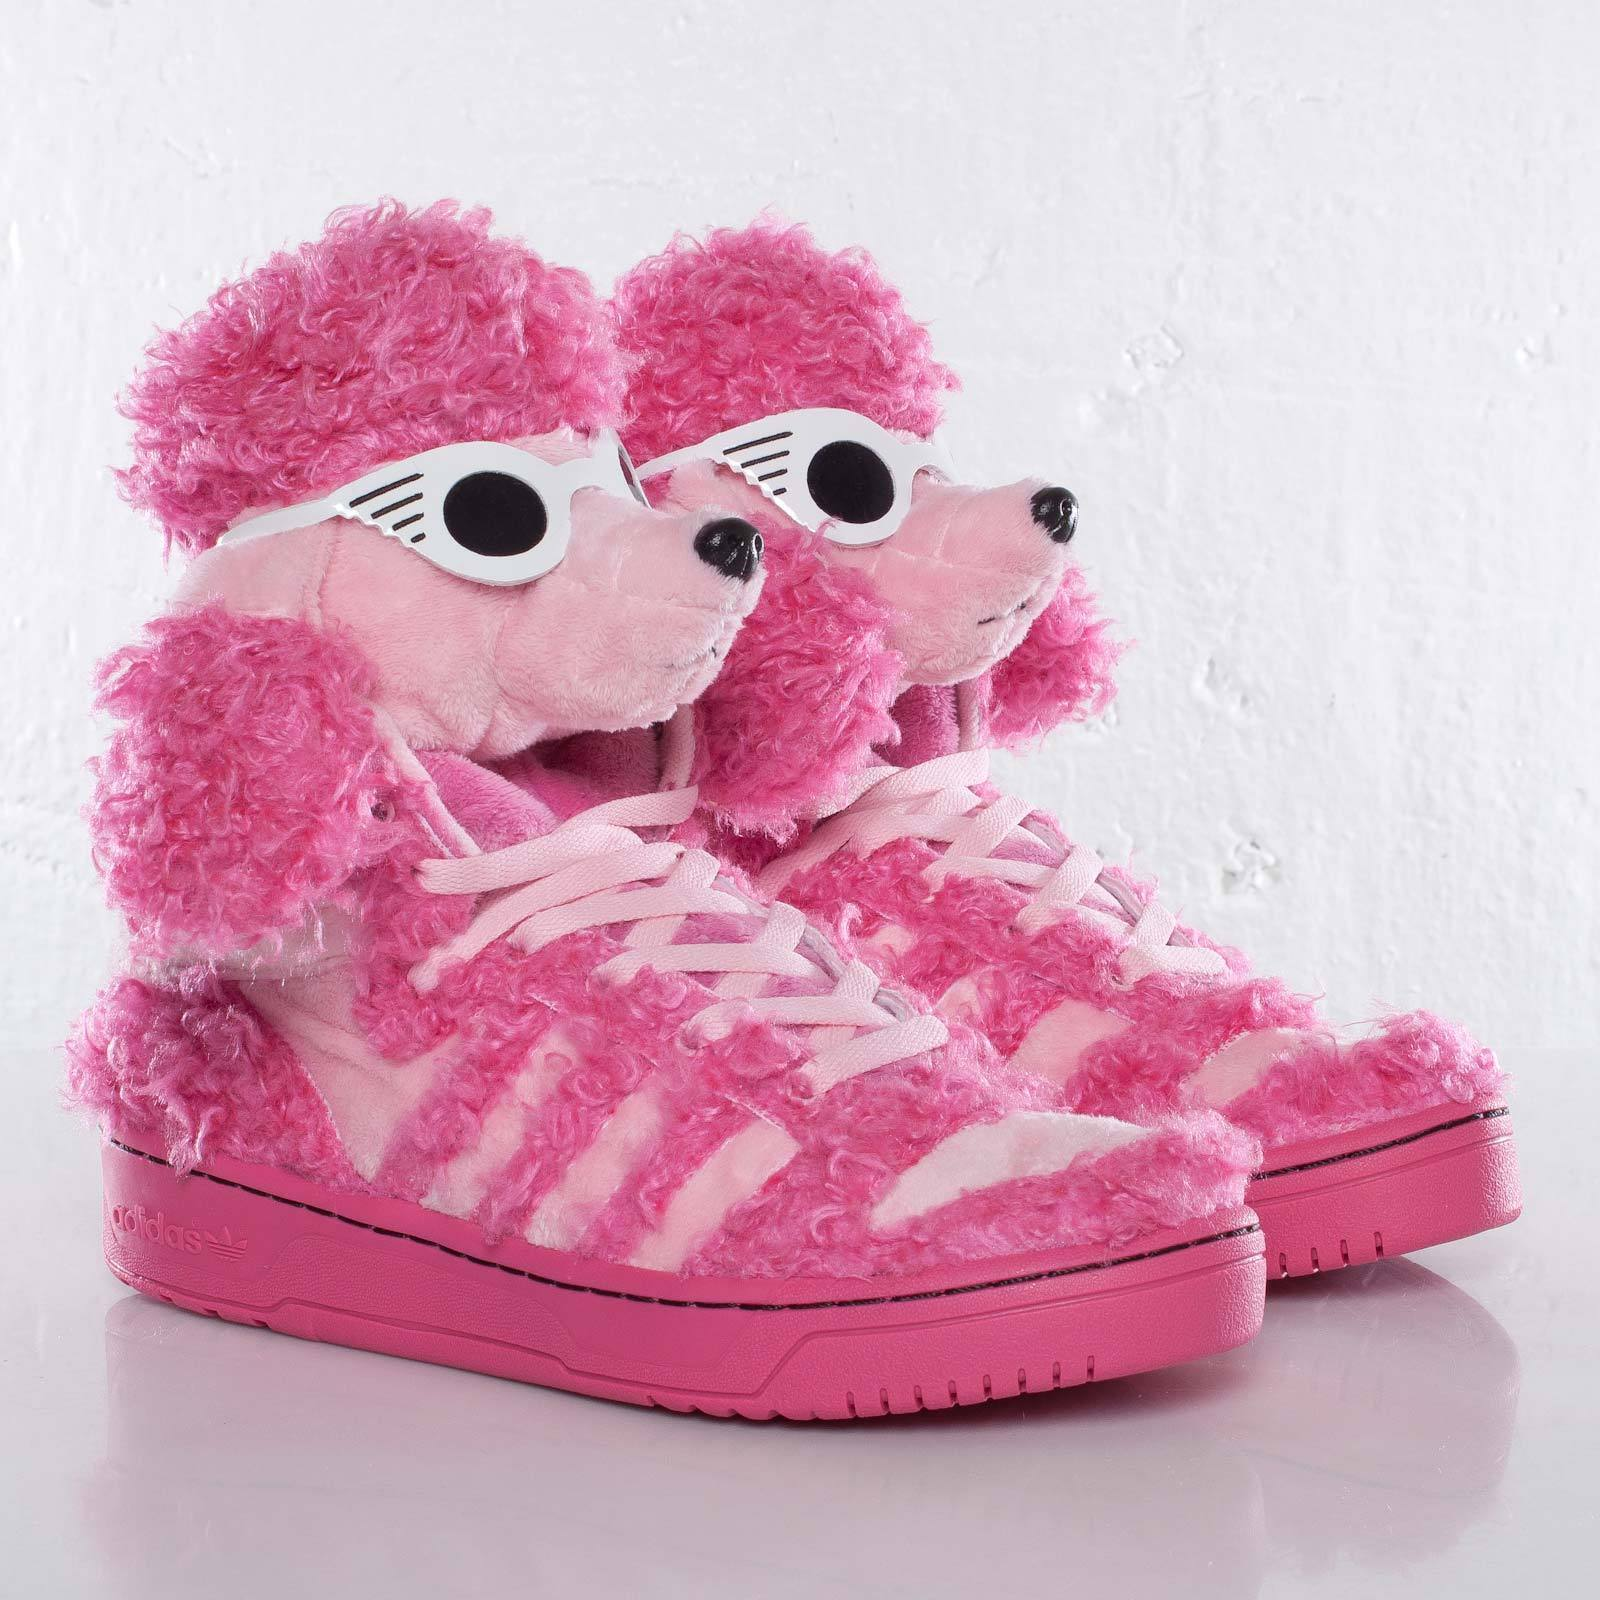 AUTHENTIC-Adidas Originals JEREMY SCOTT POODLE Trainer Teddy Sneaker shoesMens 9